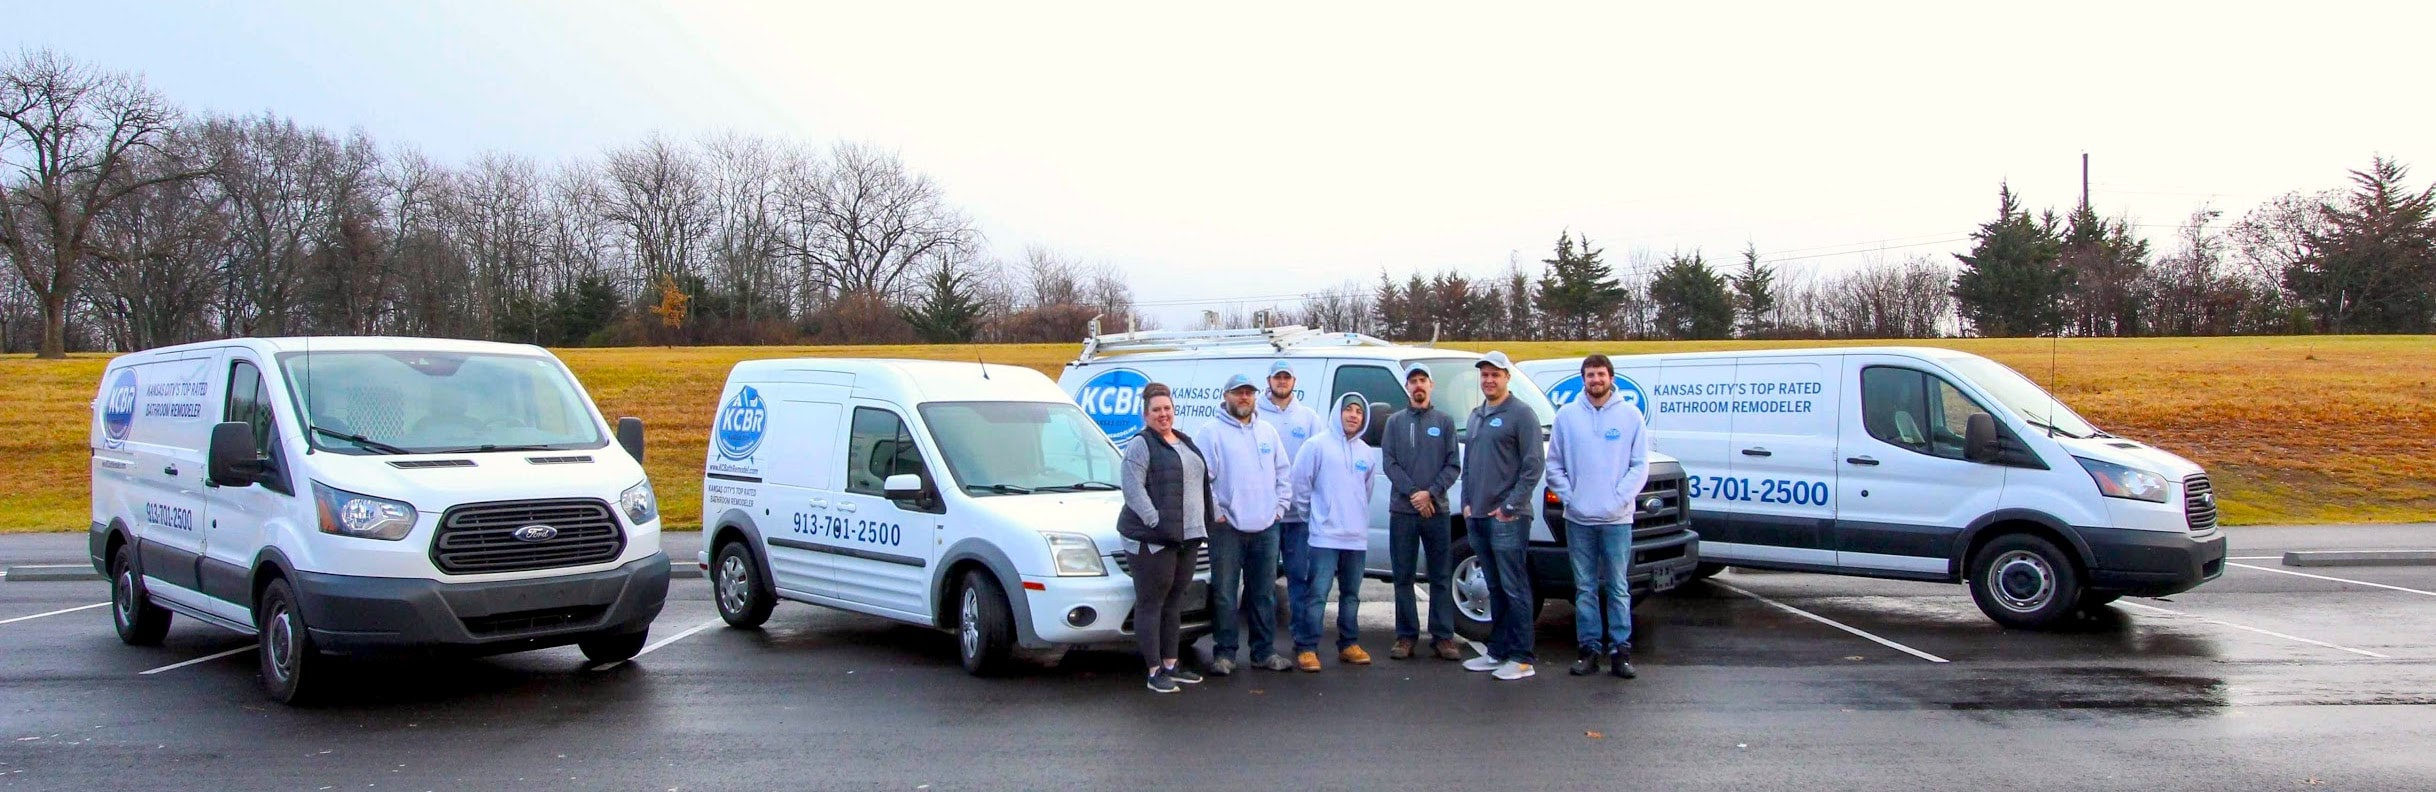 KCBR | Kansas City Bathroom Remodeling Team 2019